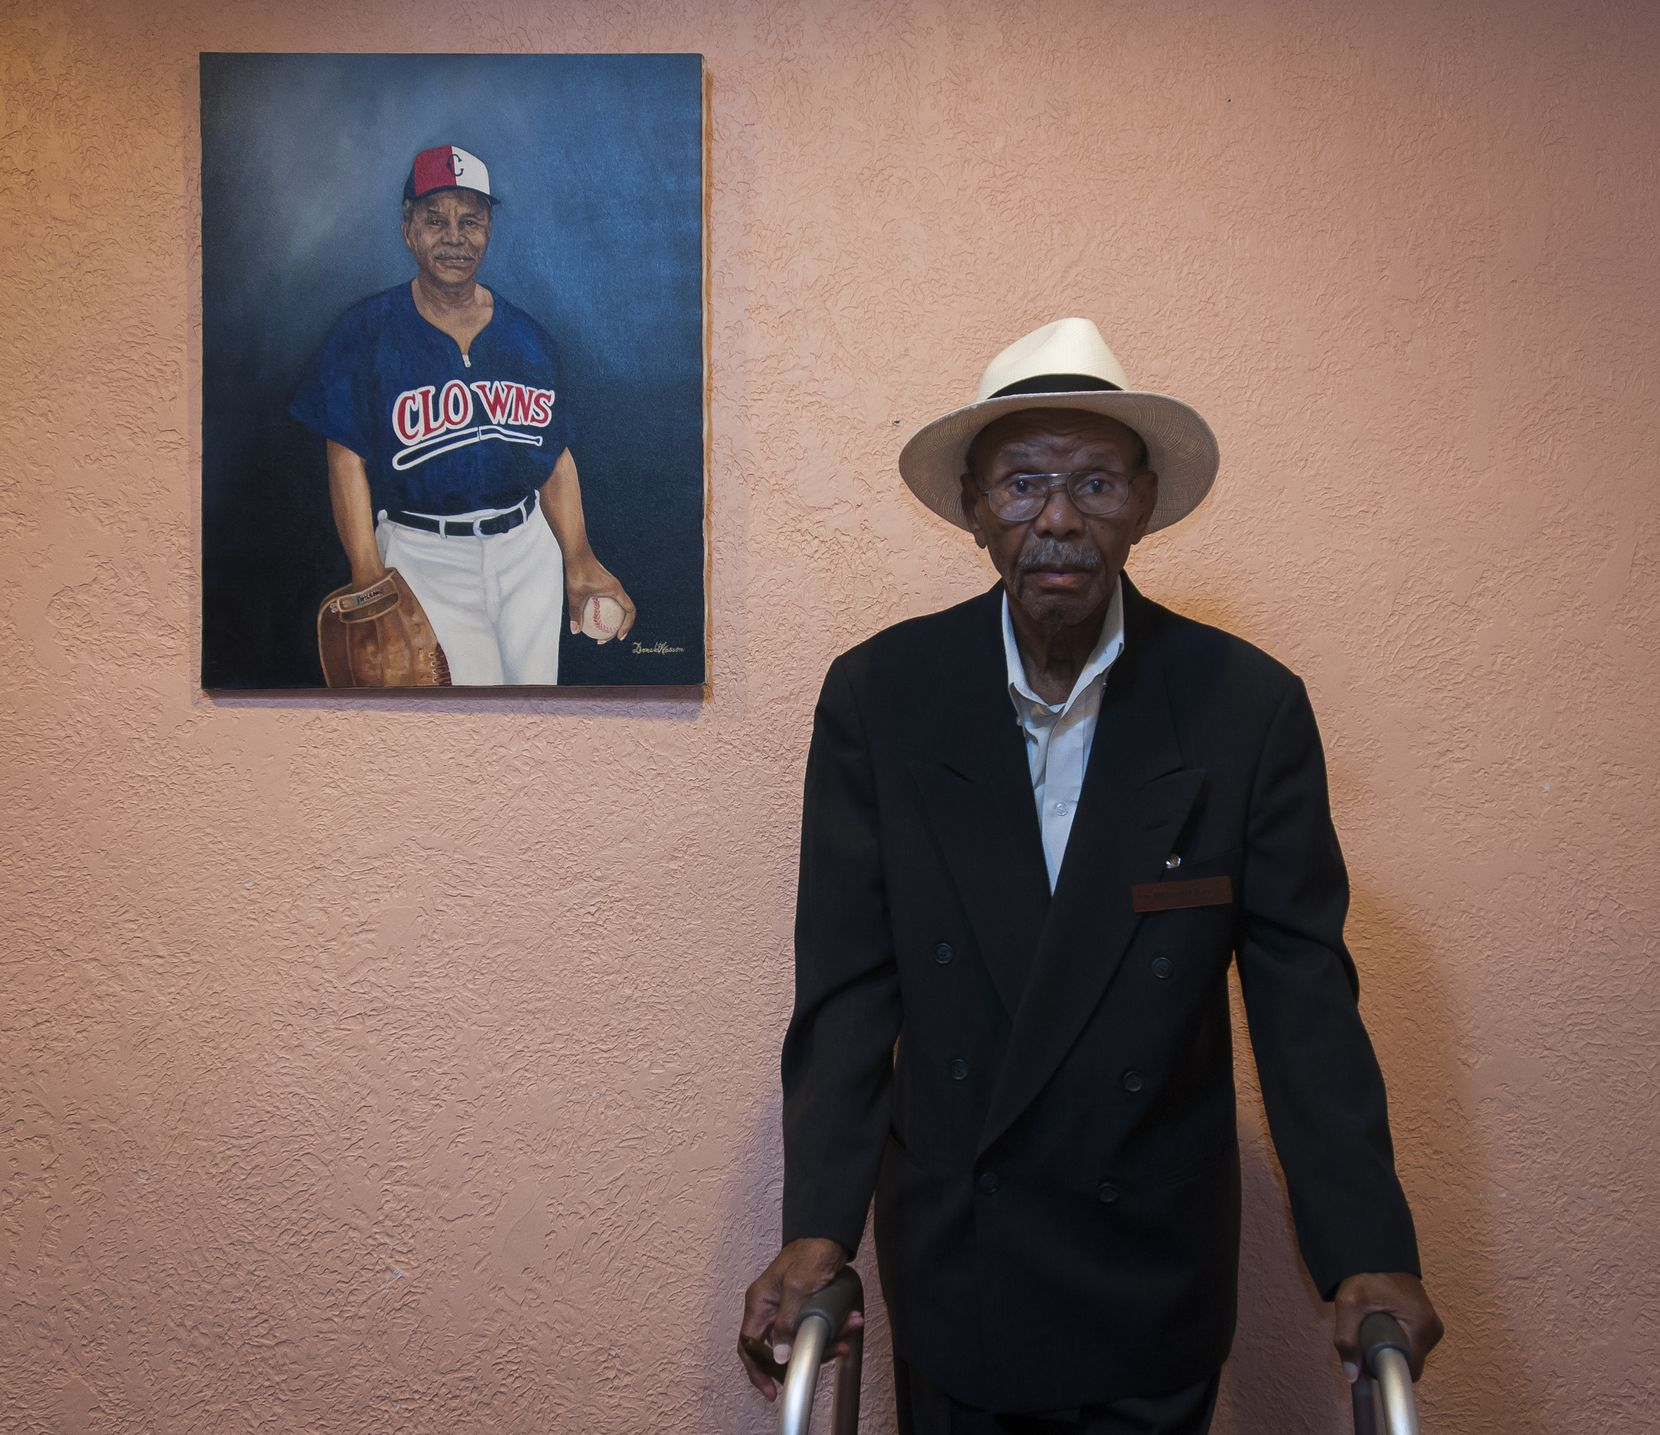 William Blair founded the weekly Elite News after pitching in the Negro Leagues.